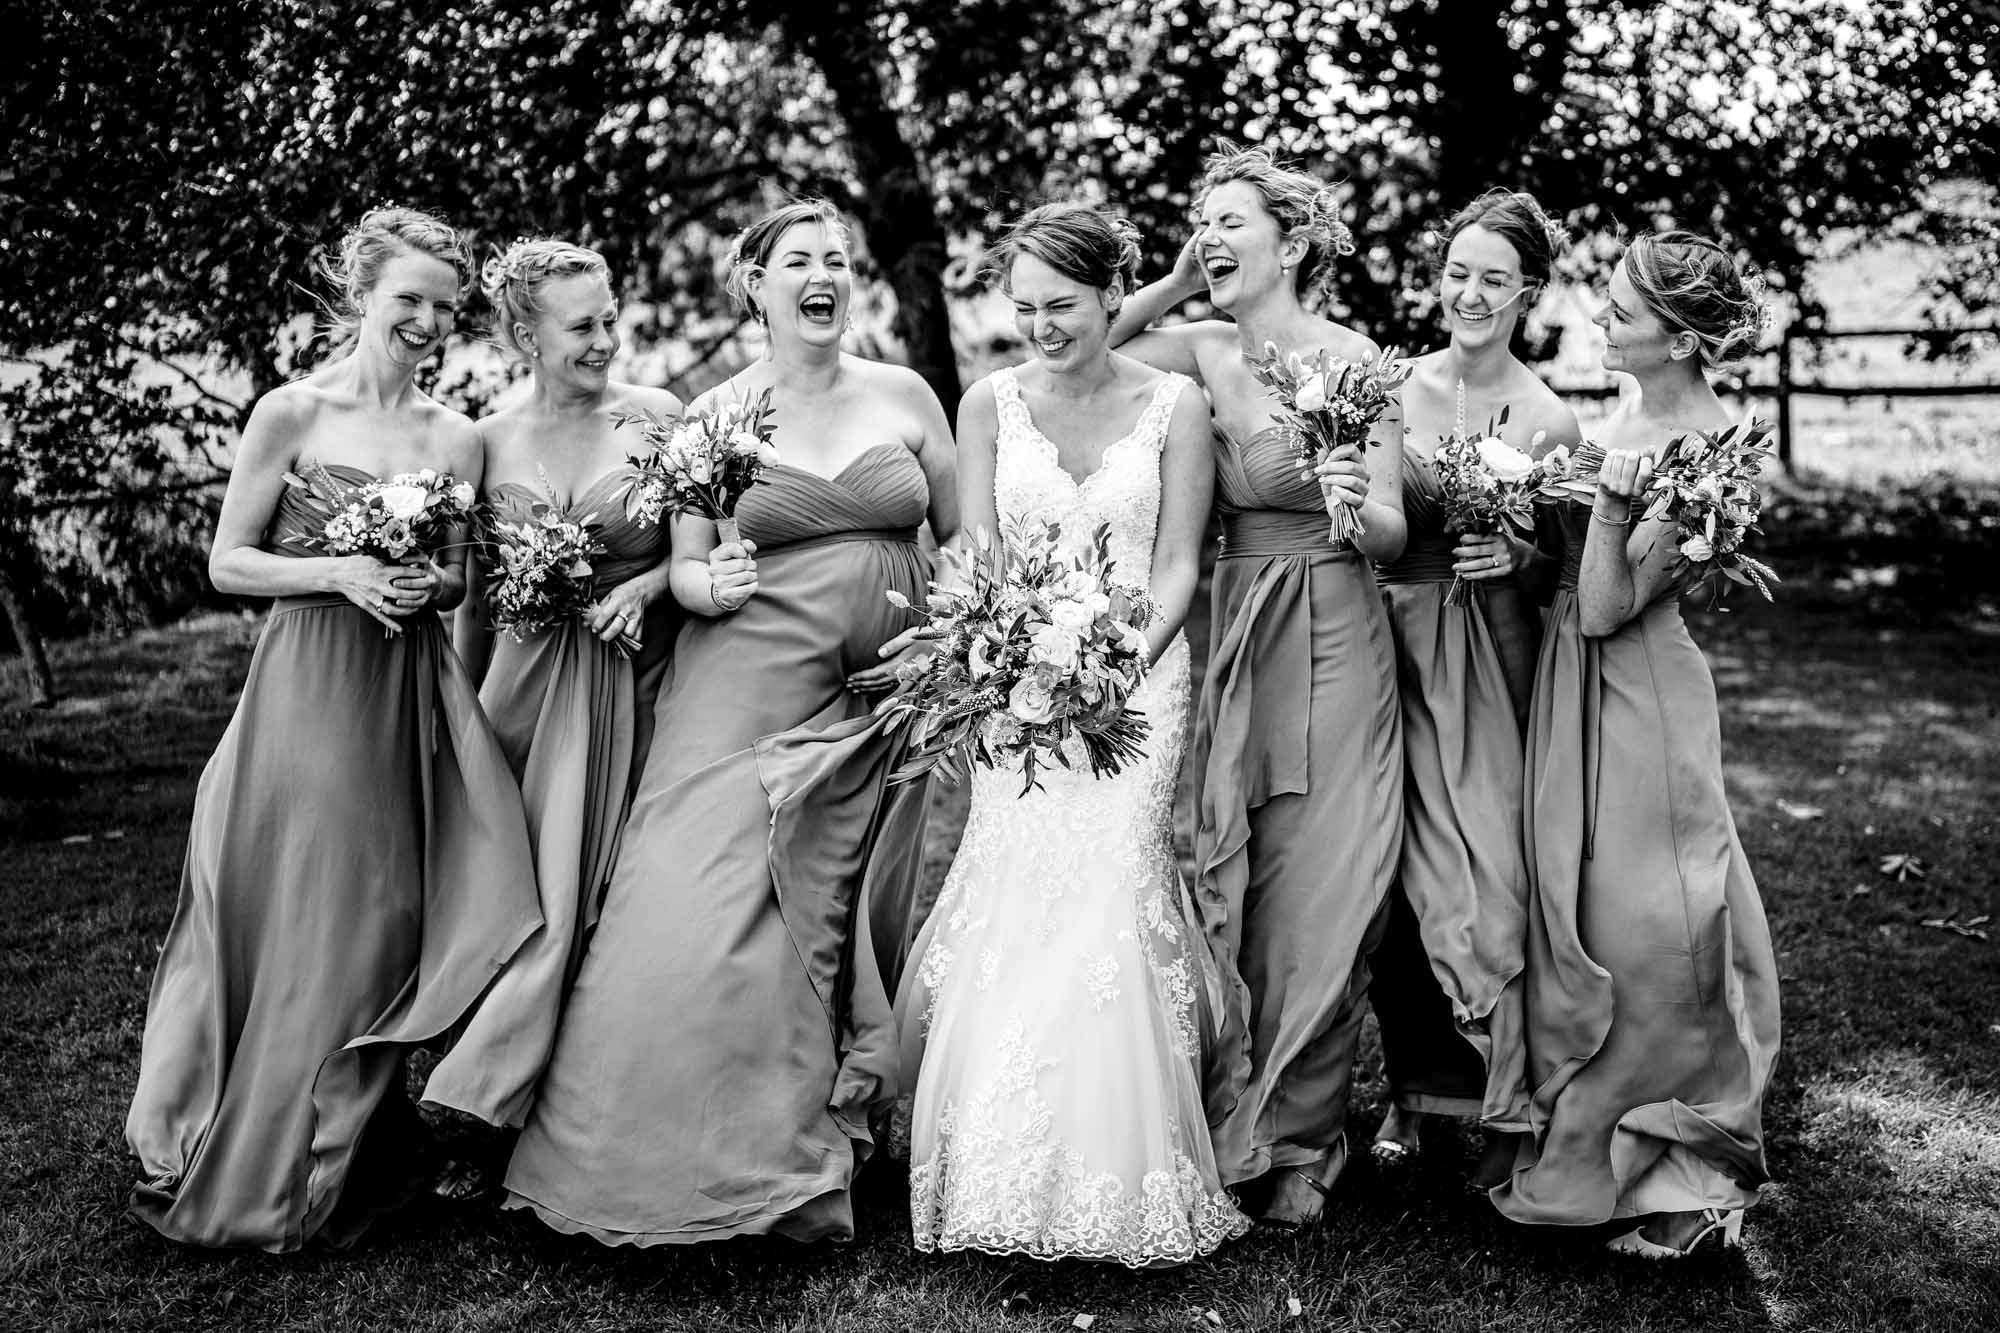 Herefordshire wedding photographer, Wedding Photographer in Herefordshire, West Midlands Wedding Photographer, Best Wedding photography in the west midlands, David Liebst Photography